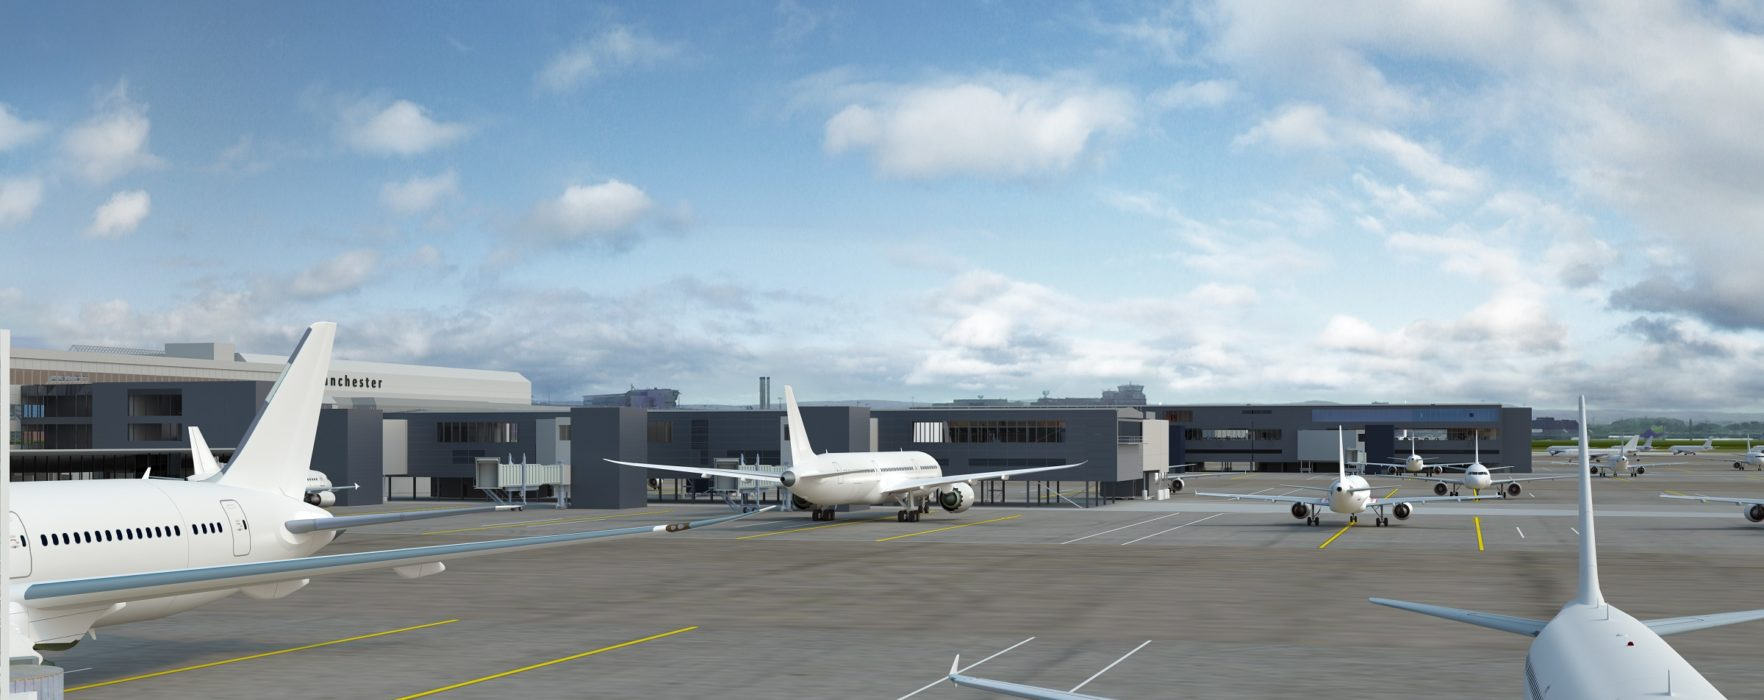 Manchester Airport closes two terminals operating solely from Terminal 1 for the foreseeable future